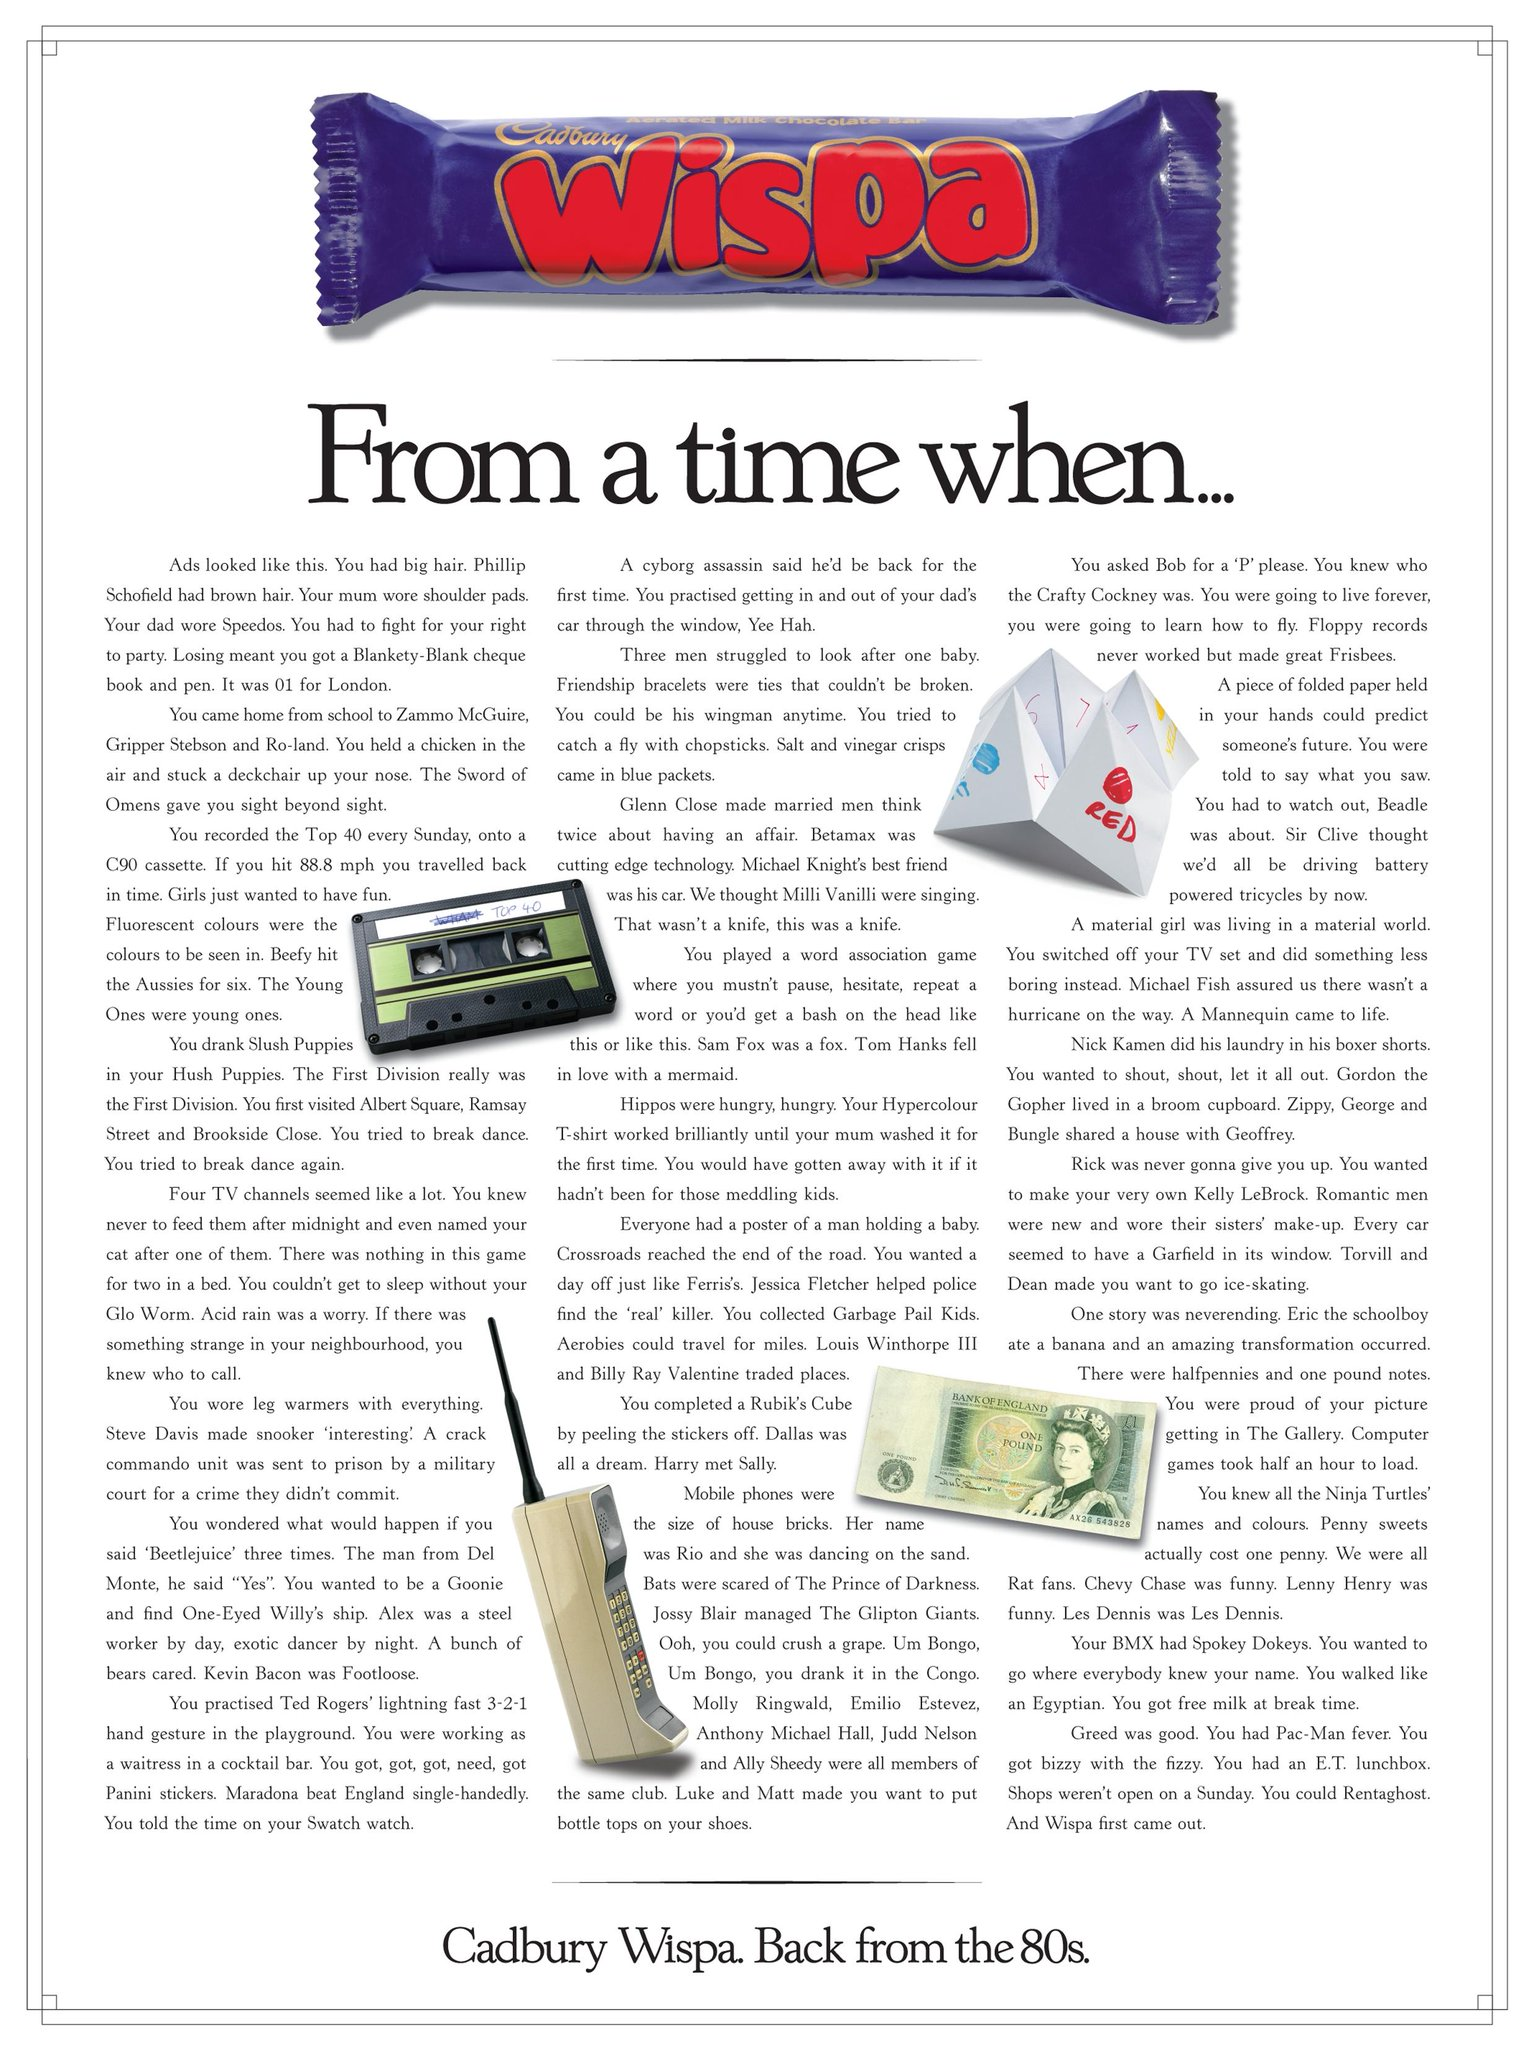 RT @ReadMeLKP: Featured in the book: wonderful ad for @CadburyUK by @PublicisLondon. Demonstrates great subject knowledge. http://t.co/wuw6…